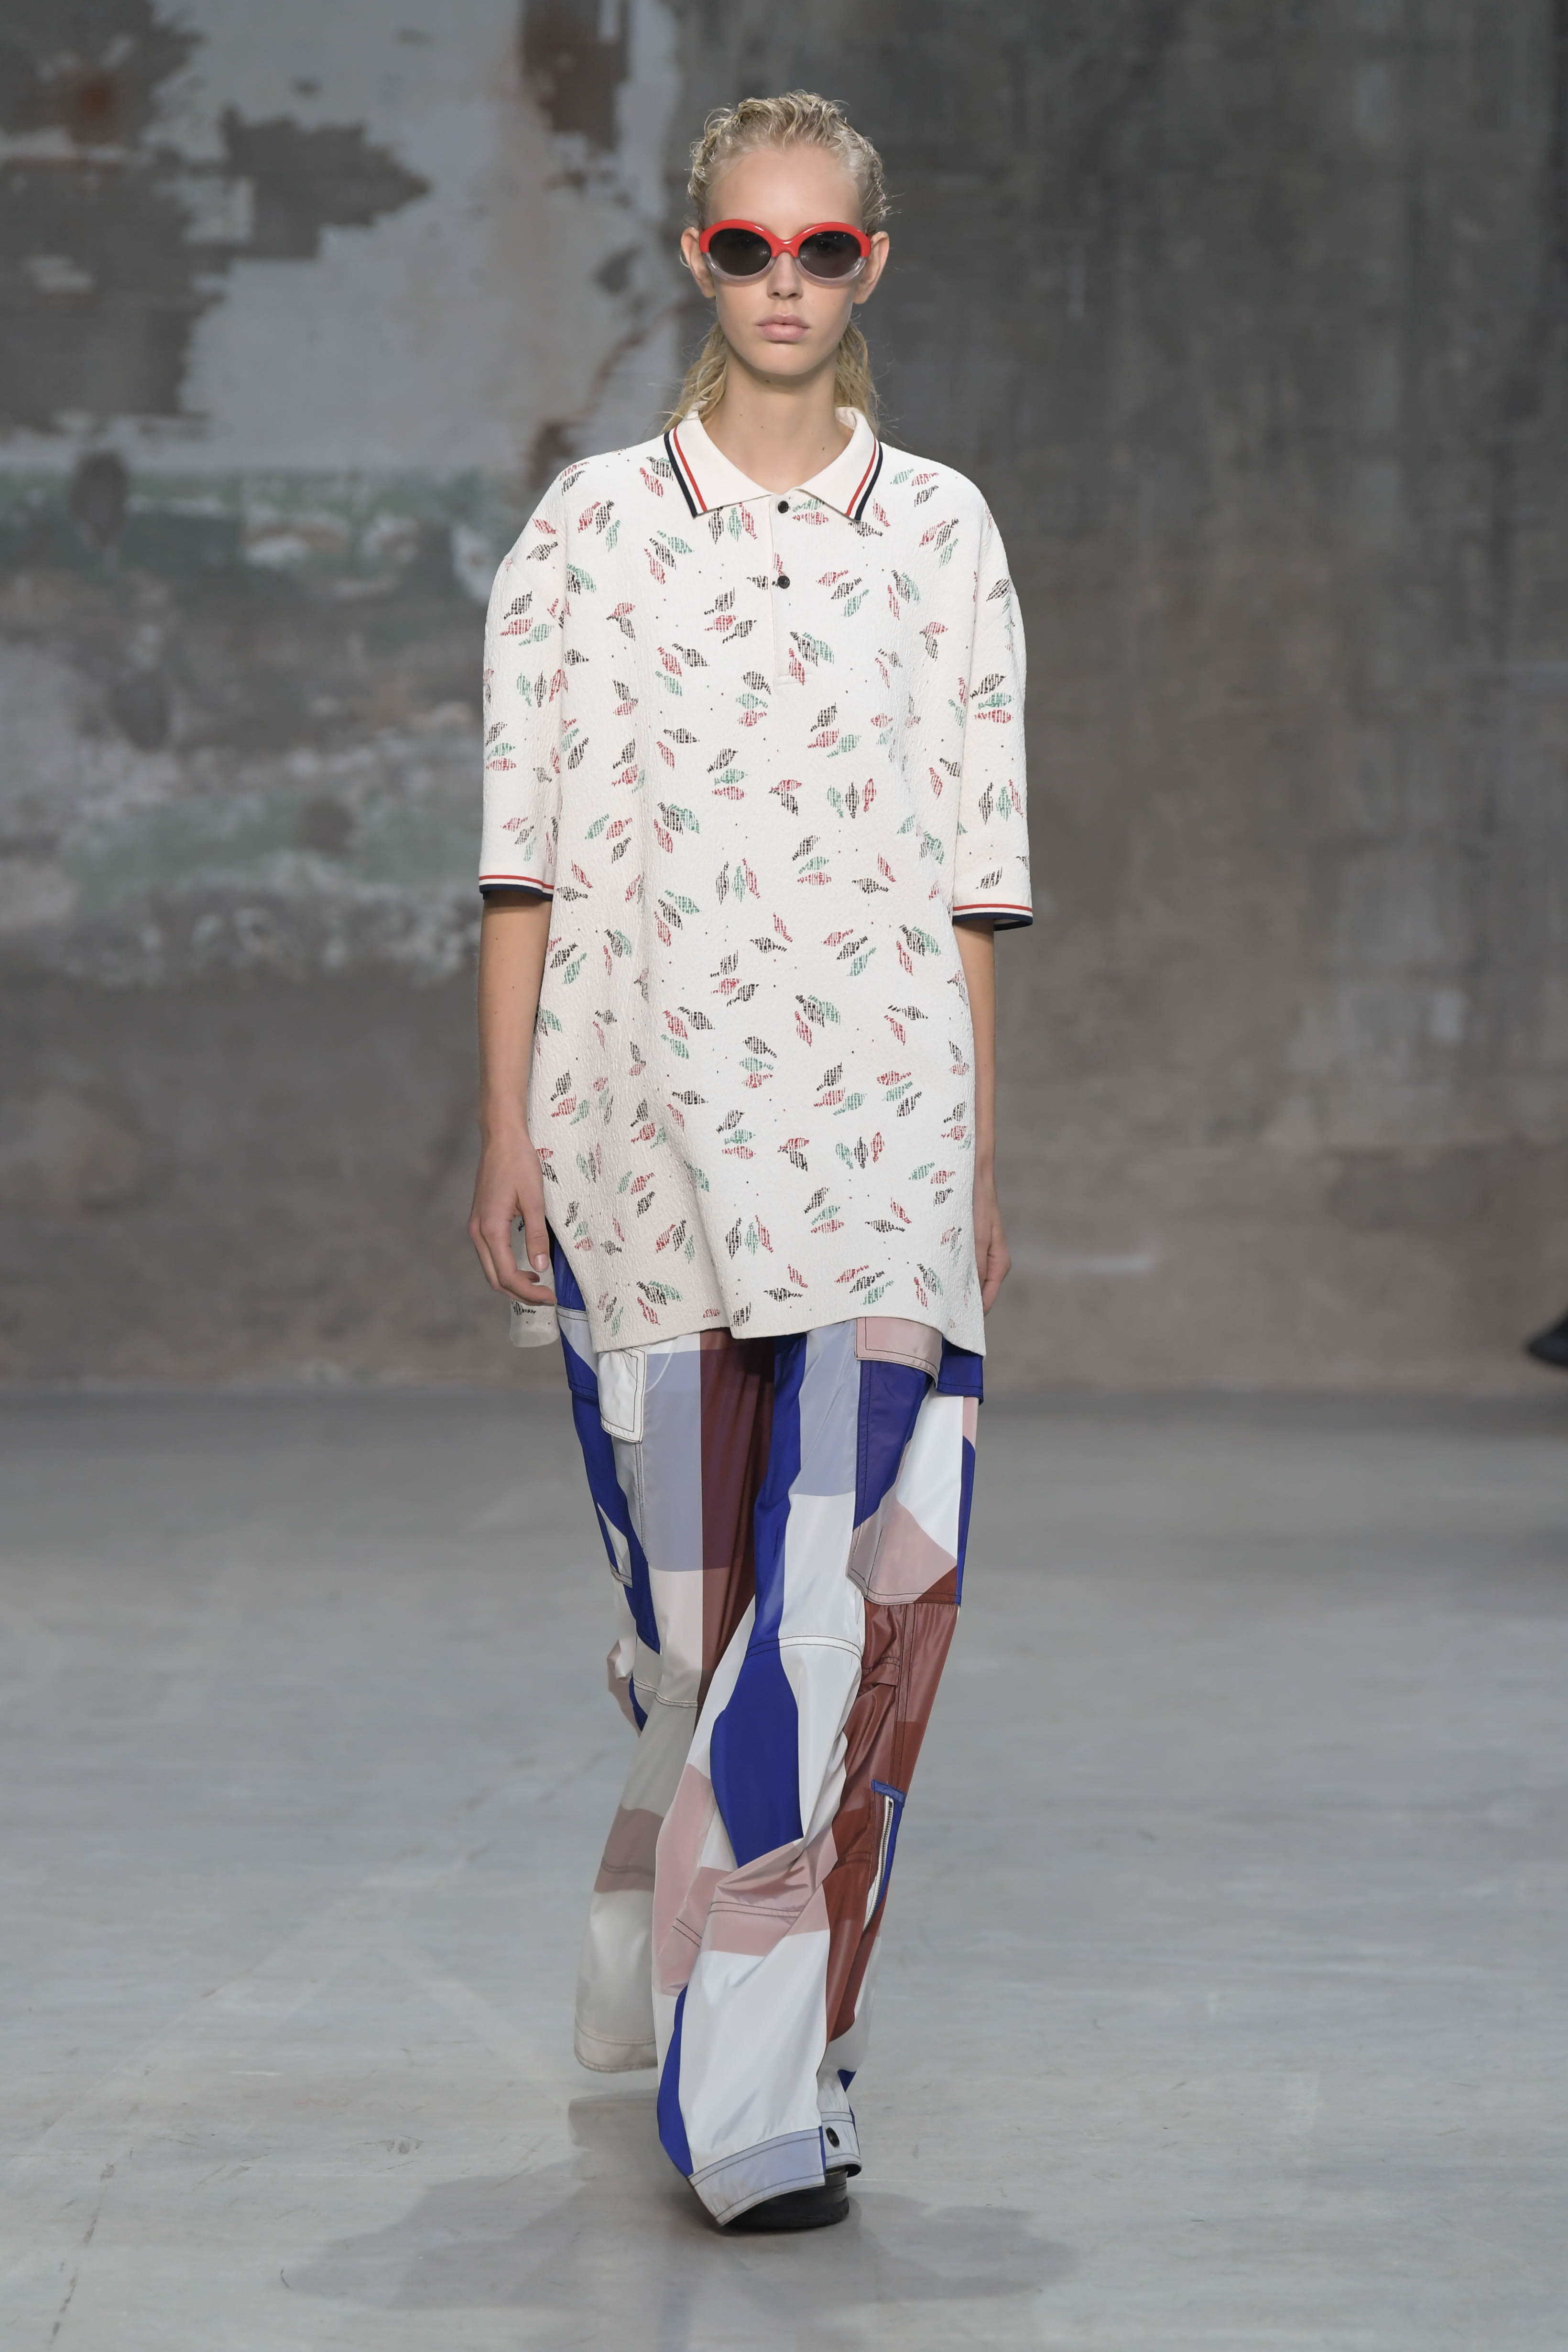 Marni spring-summer 2018 collection